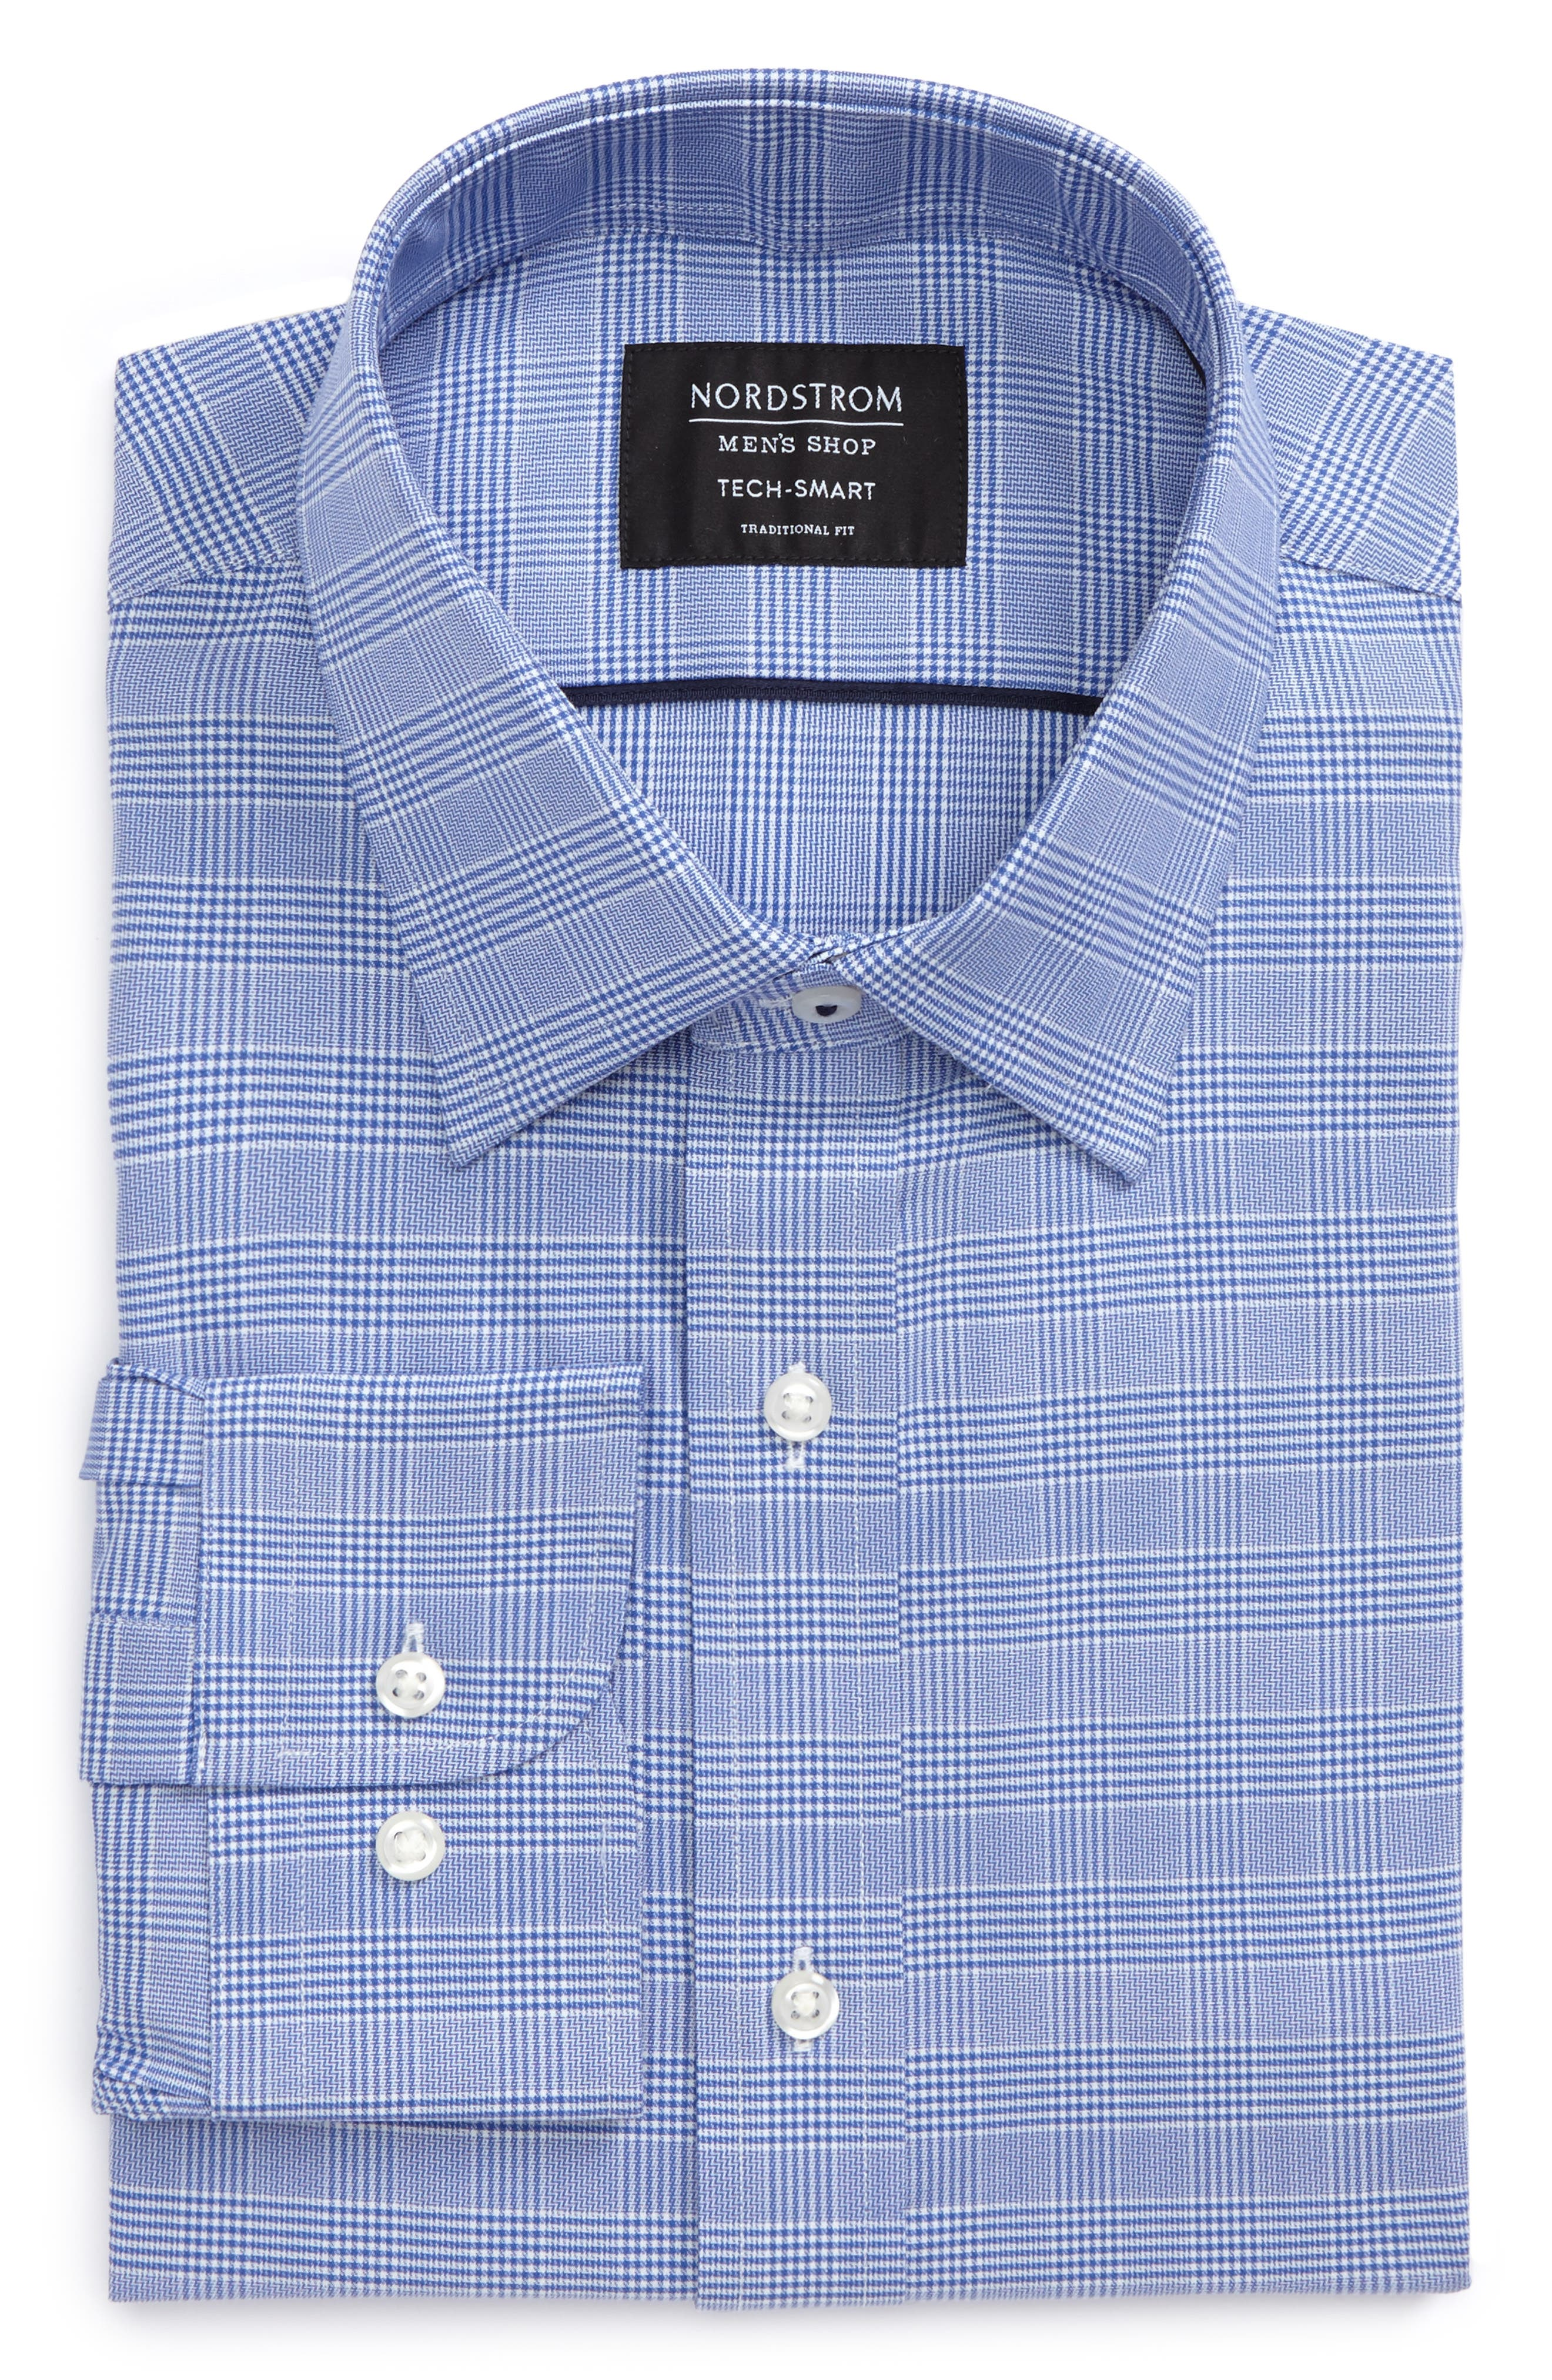 Alternate Image 1 Selected - Nordstrom Men's Shop Tech-Smart Traditional Fit Check Dress Shirt